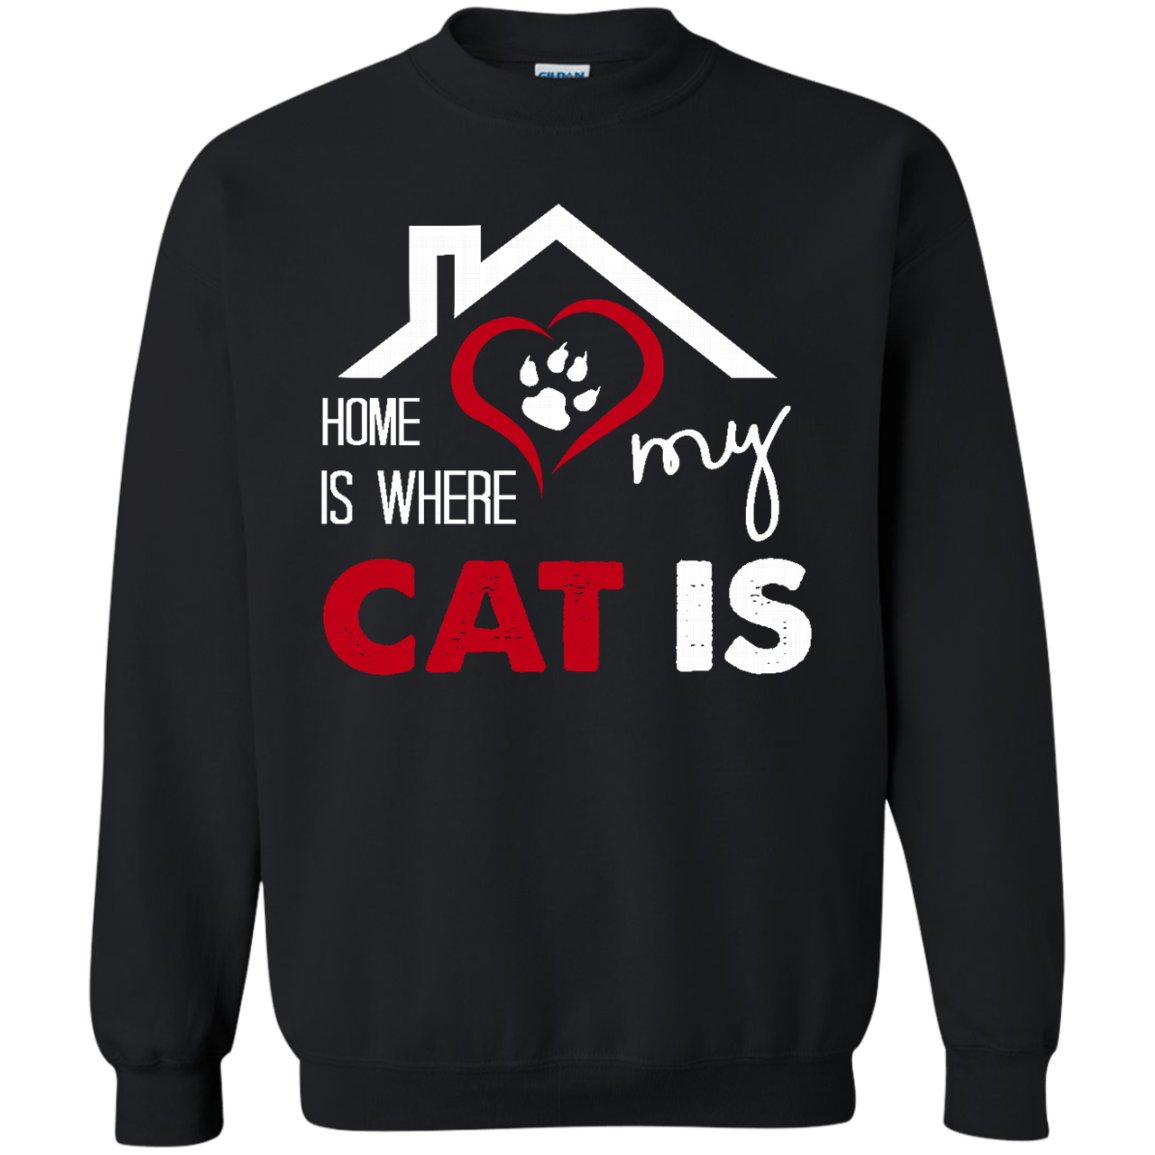 Cat Sweatshirt Home is Where My Cat Is like as a gift for who loves Cat  yourself  friends on birthday  christmas or Occasions